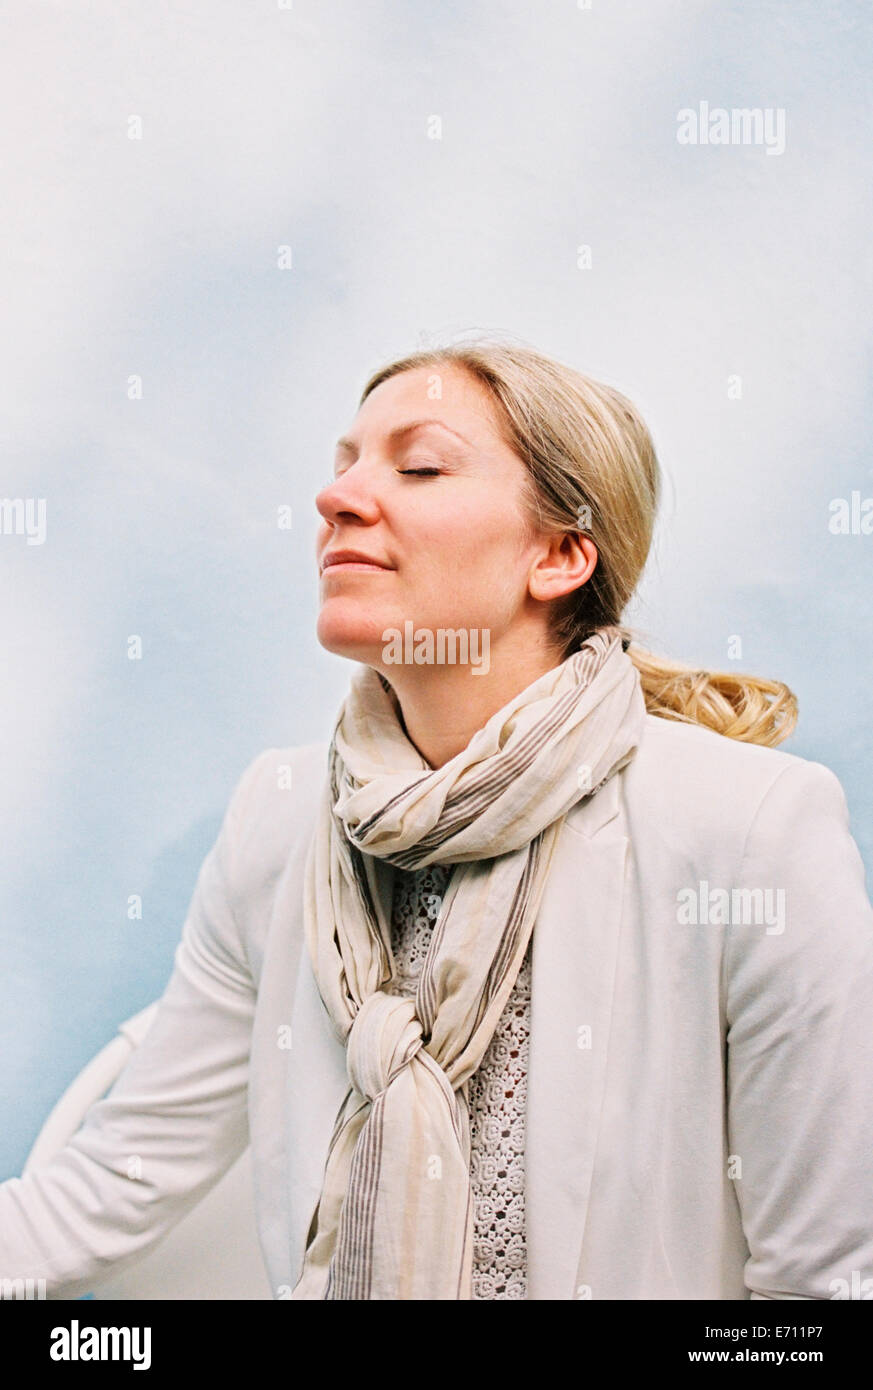 A woman with blonde hair sitting with her eyes closed and her head tilted back, feeling the sun on her face. - Stock Image